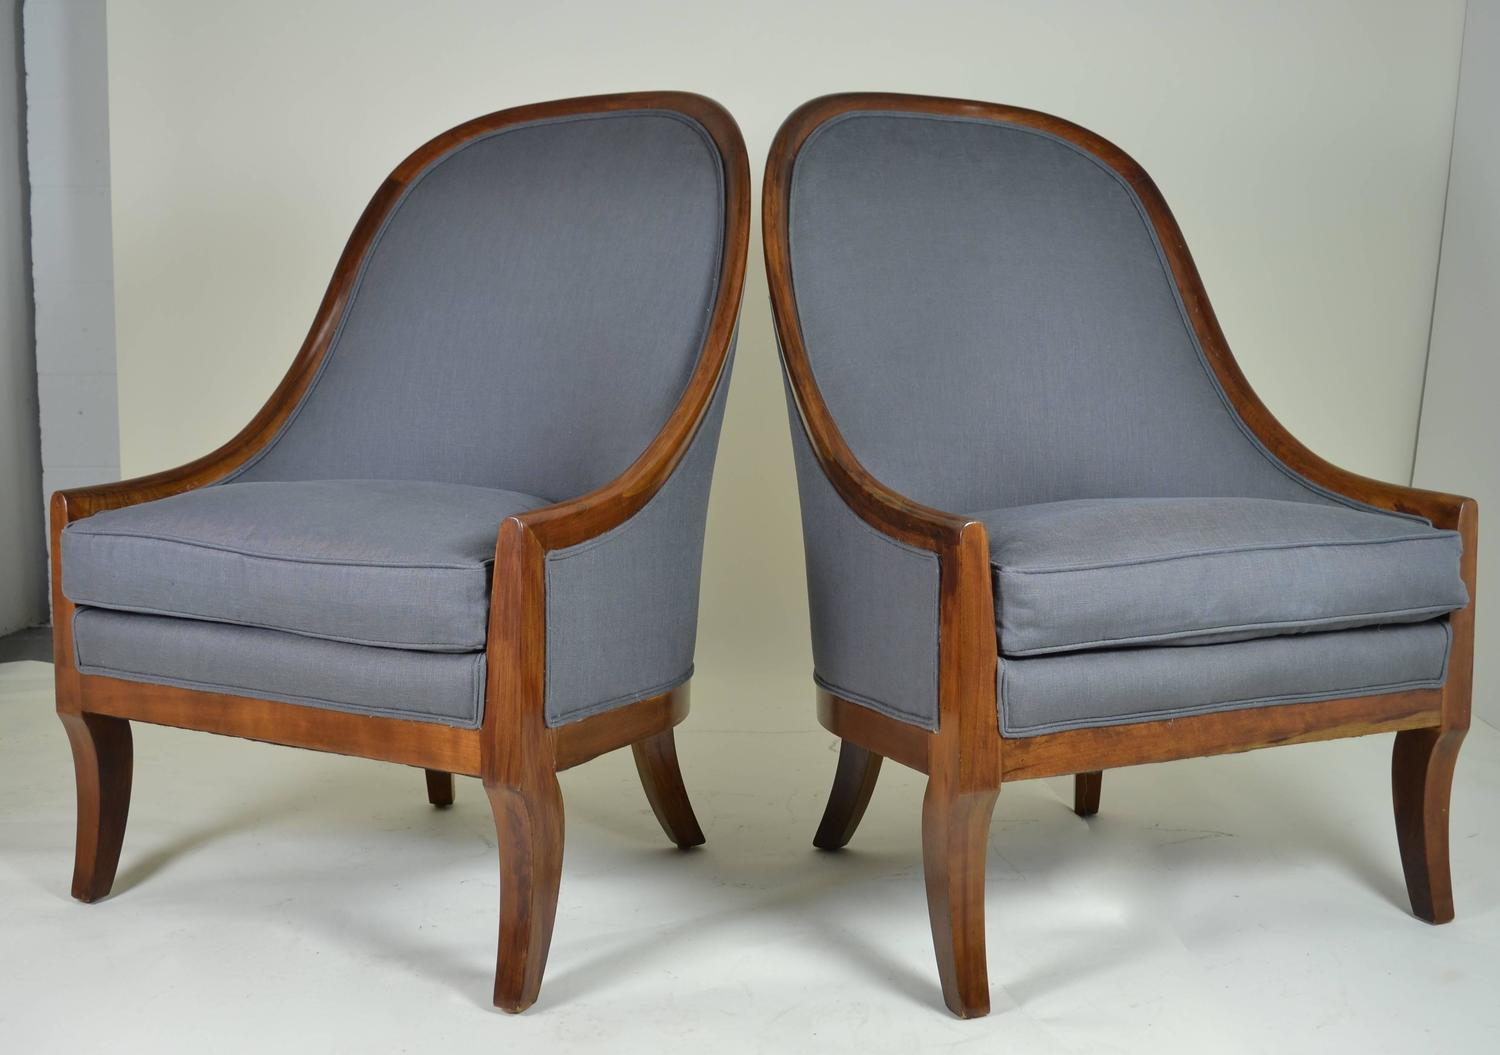 Spoon Back Chairs By Baker Furniture For Sale At 1stdibs